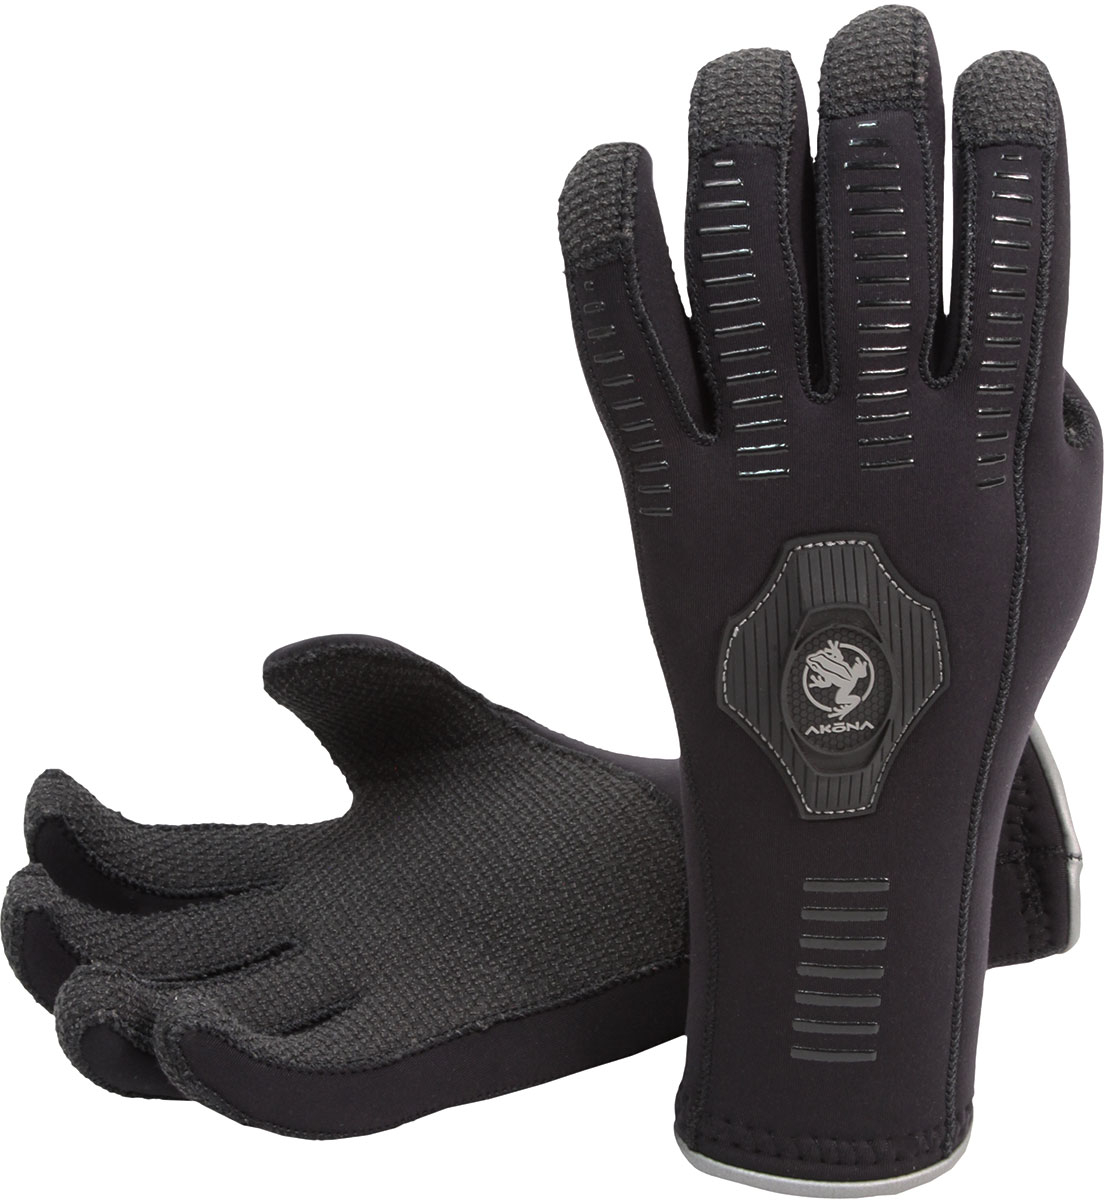 Akona 3.5mm ArmorTex Glove